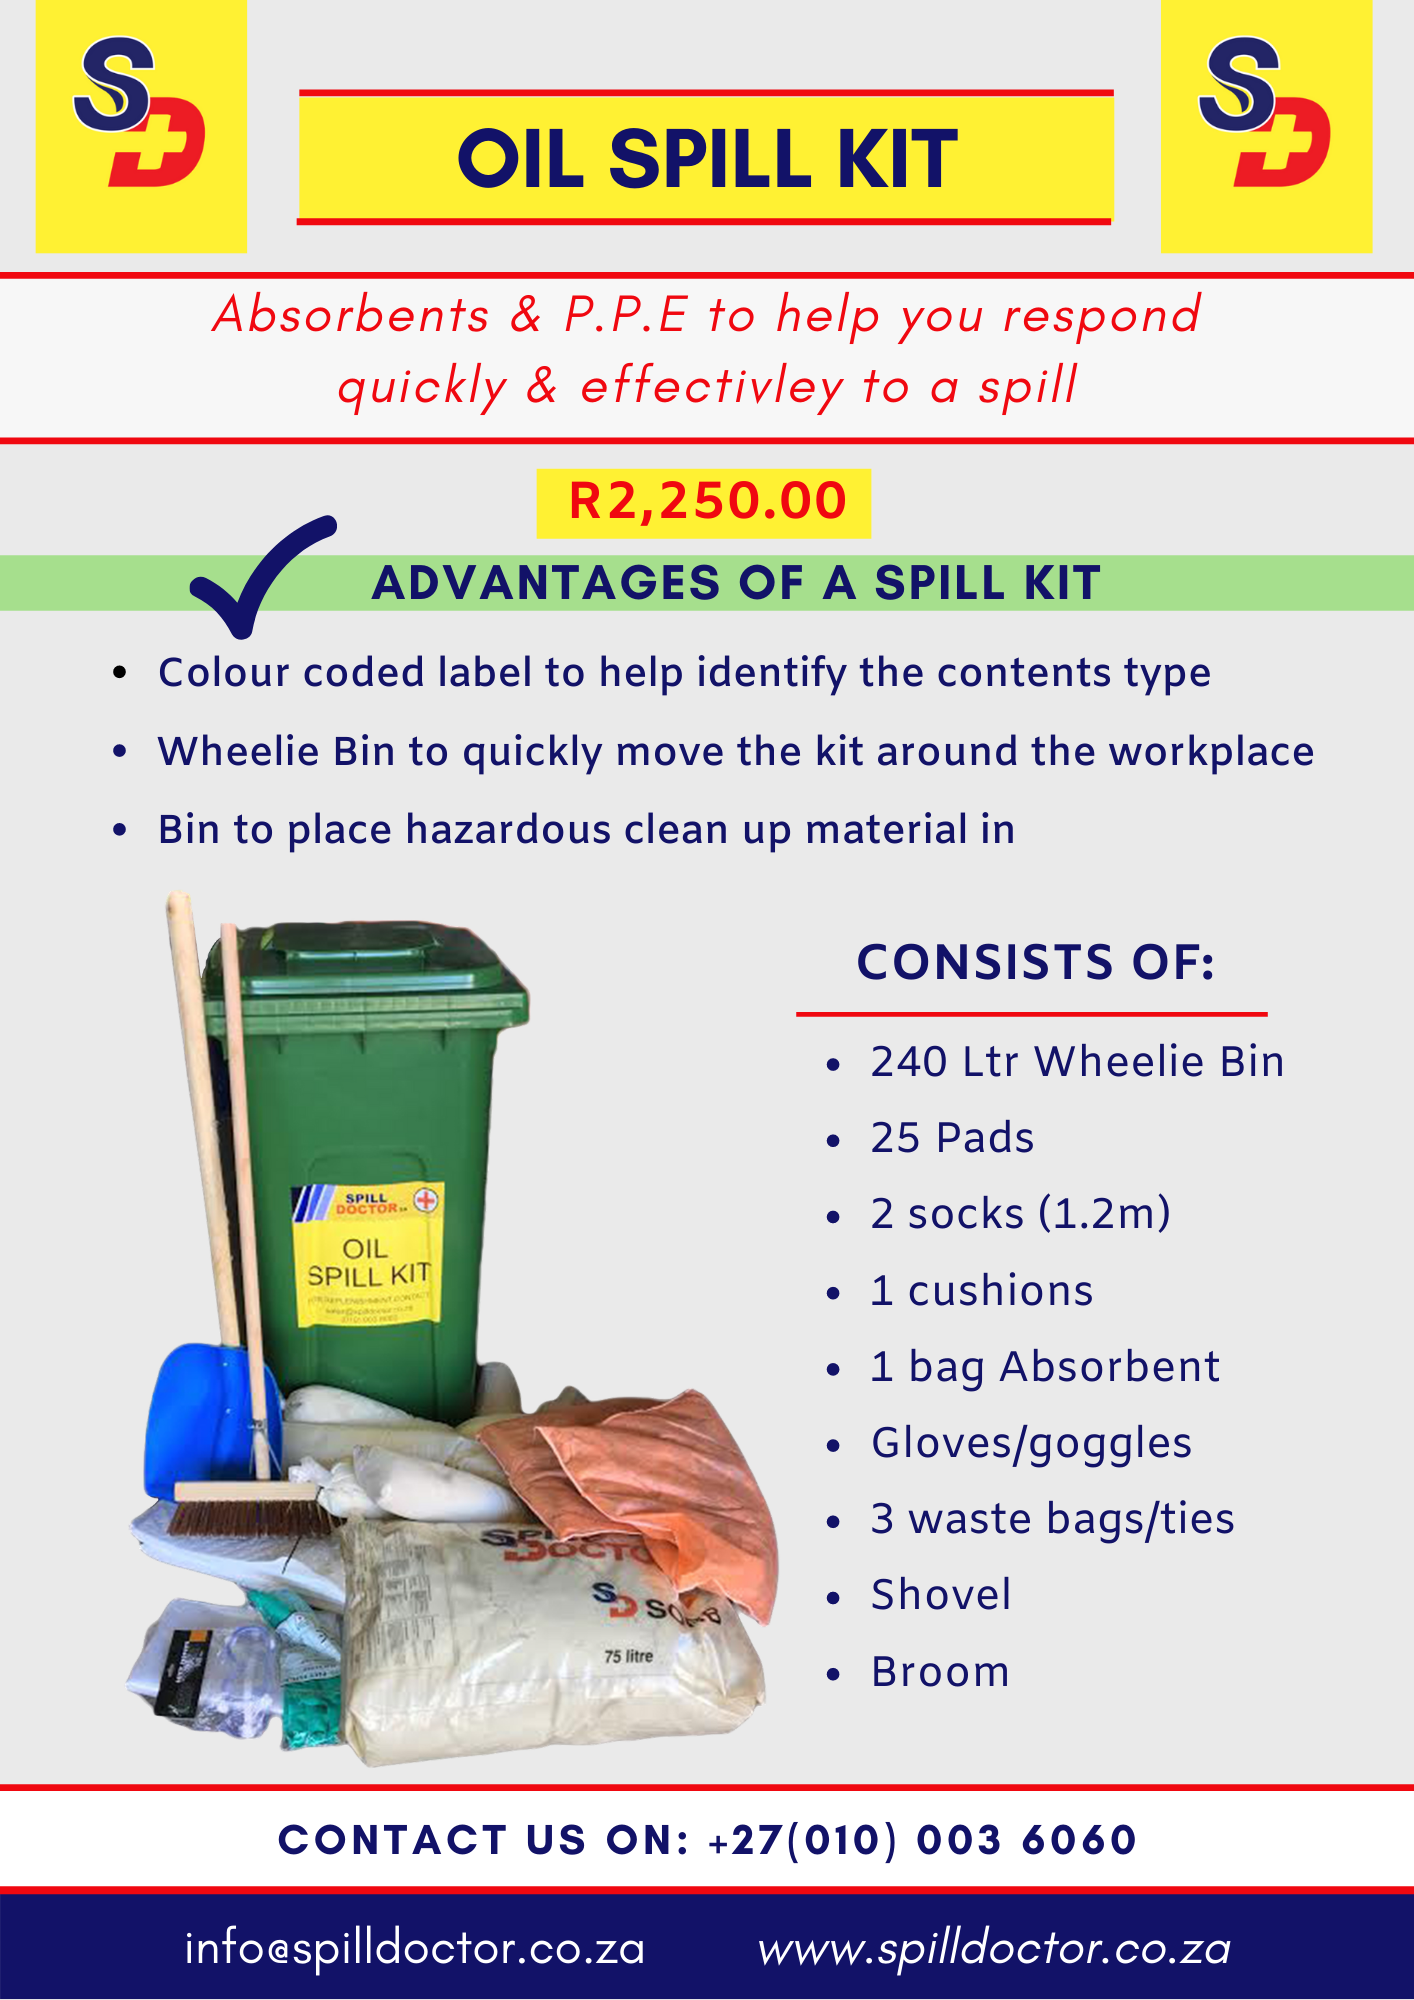 Advantages of Oil Spill Kits